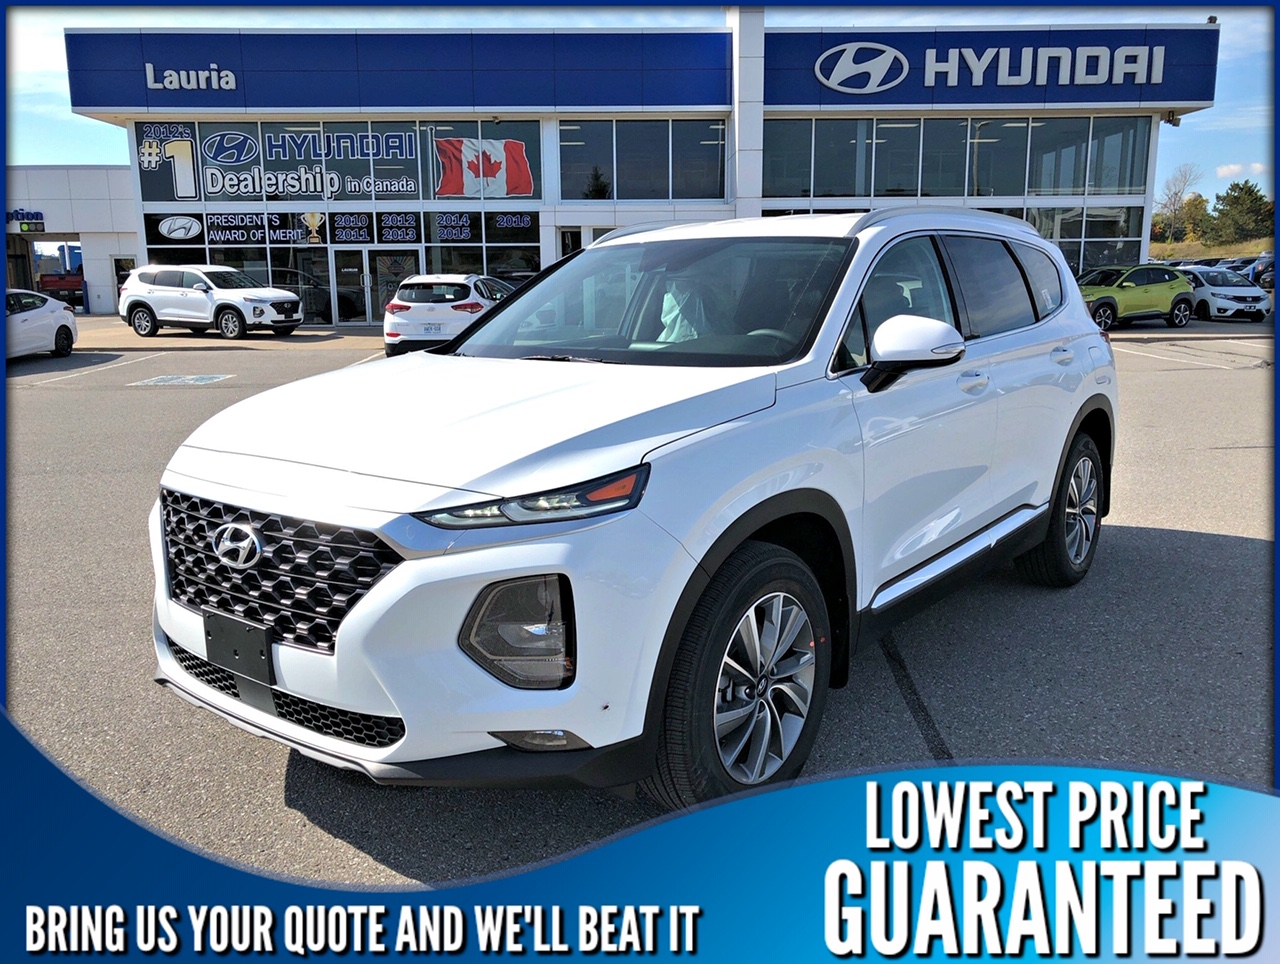 New 2020 Hyundai Santa Fe 2.4L AWD Preferred